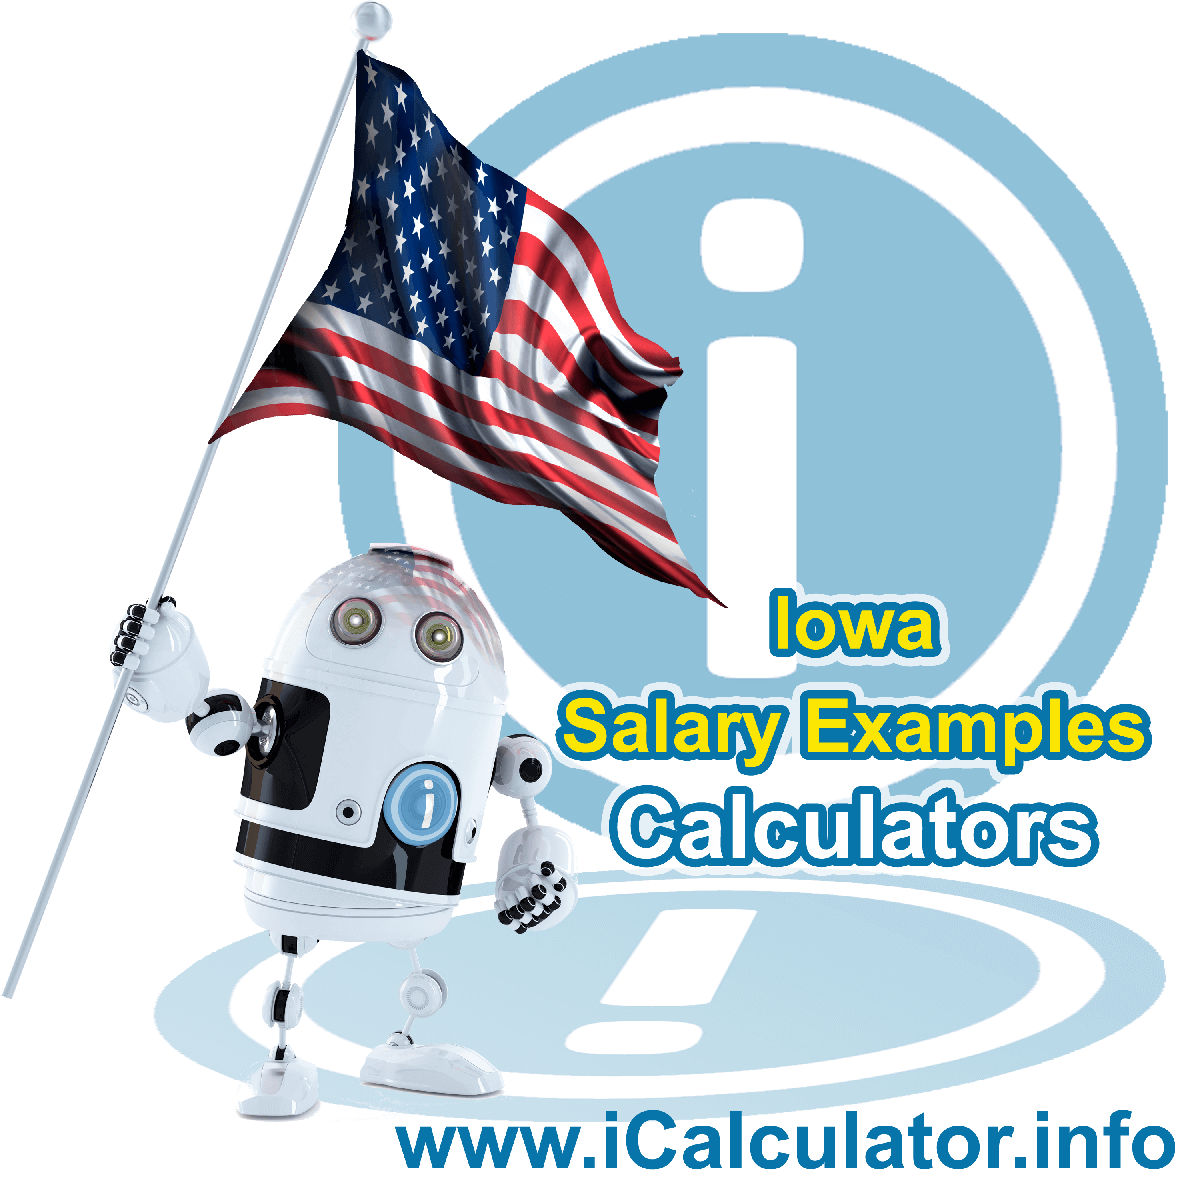 Iowa Salary Example for $140.00 in 2020 | iCalculator | $140.00 salary example for employee and employer paying Iowa State tincome taxes. Detailed salary after tax calculation including Iowa State Tax, Federal State Tax, Medicare Deductions, Social Security, Capital Gains and other income tax and salary deductions complete with supporting Iowa state tax tables